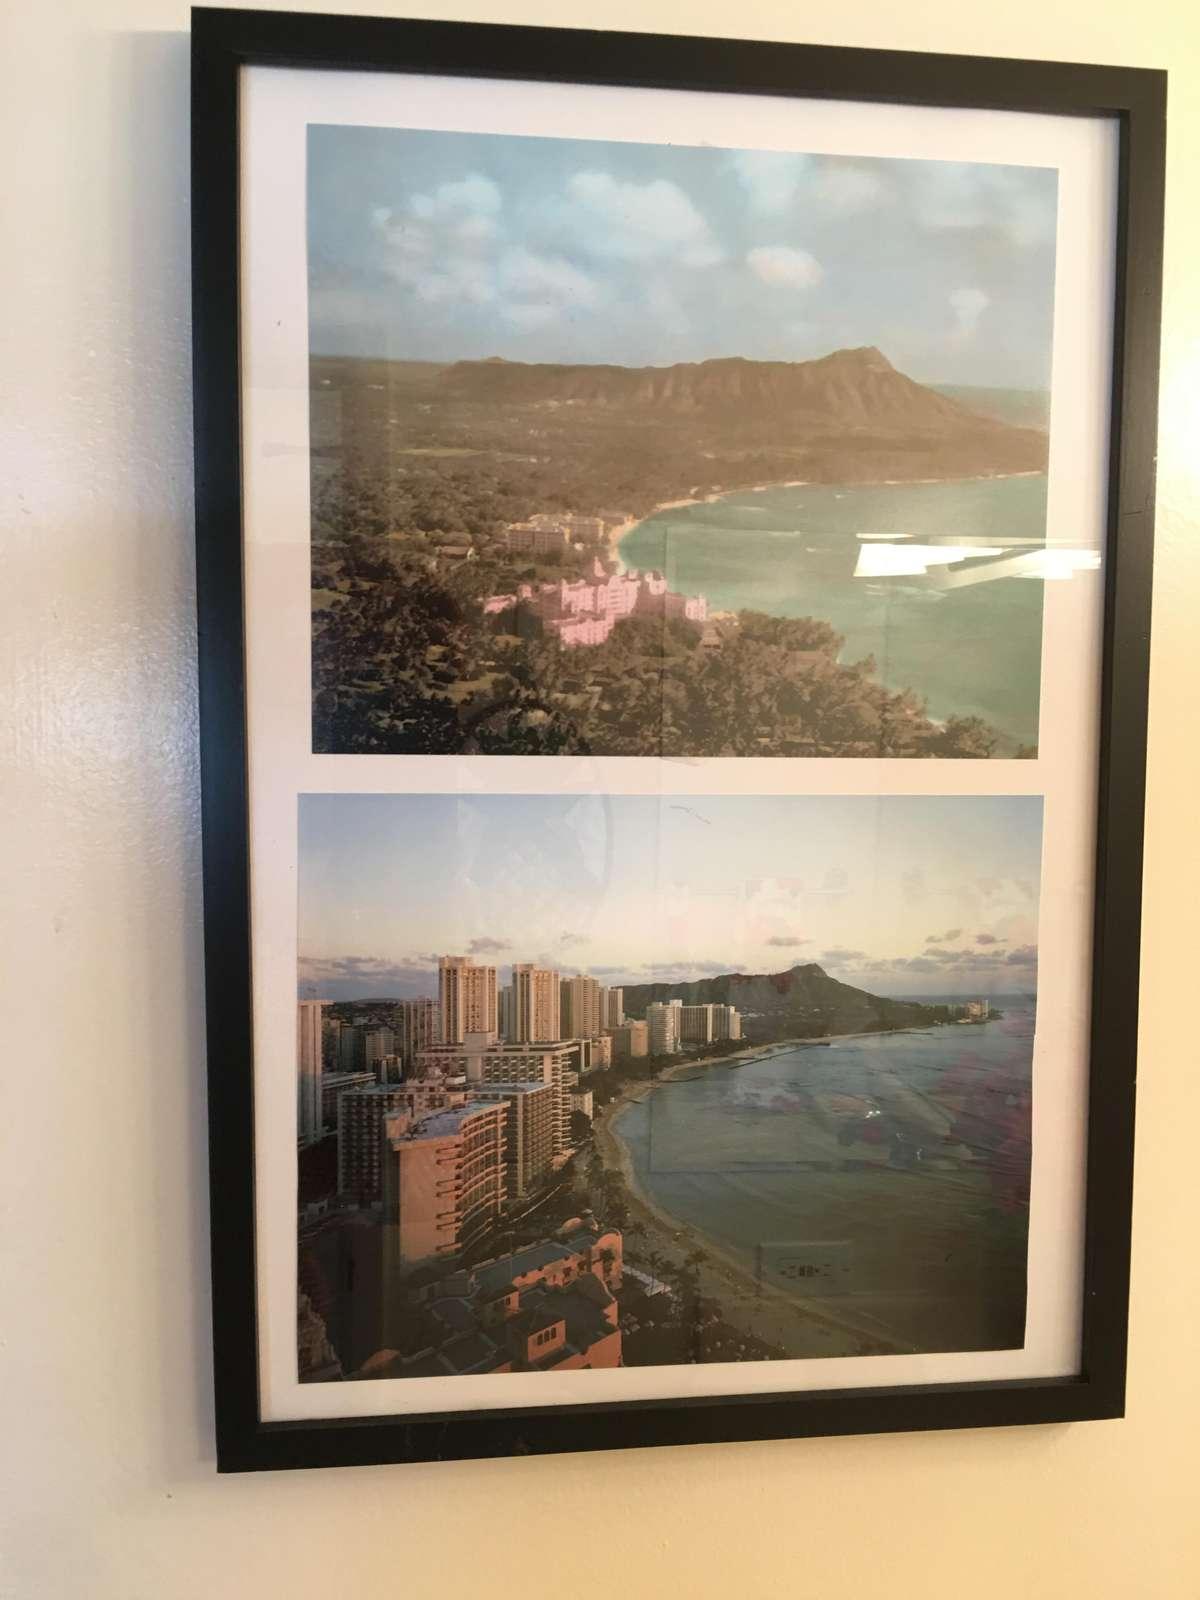 Another touch of Hawaii - local prints